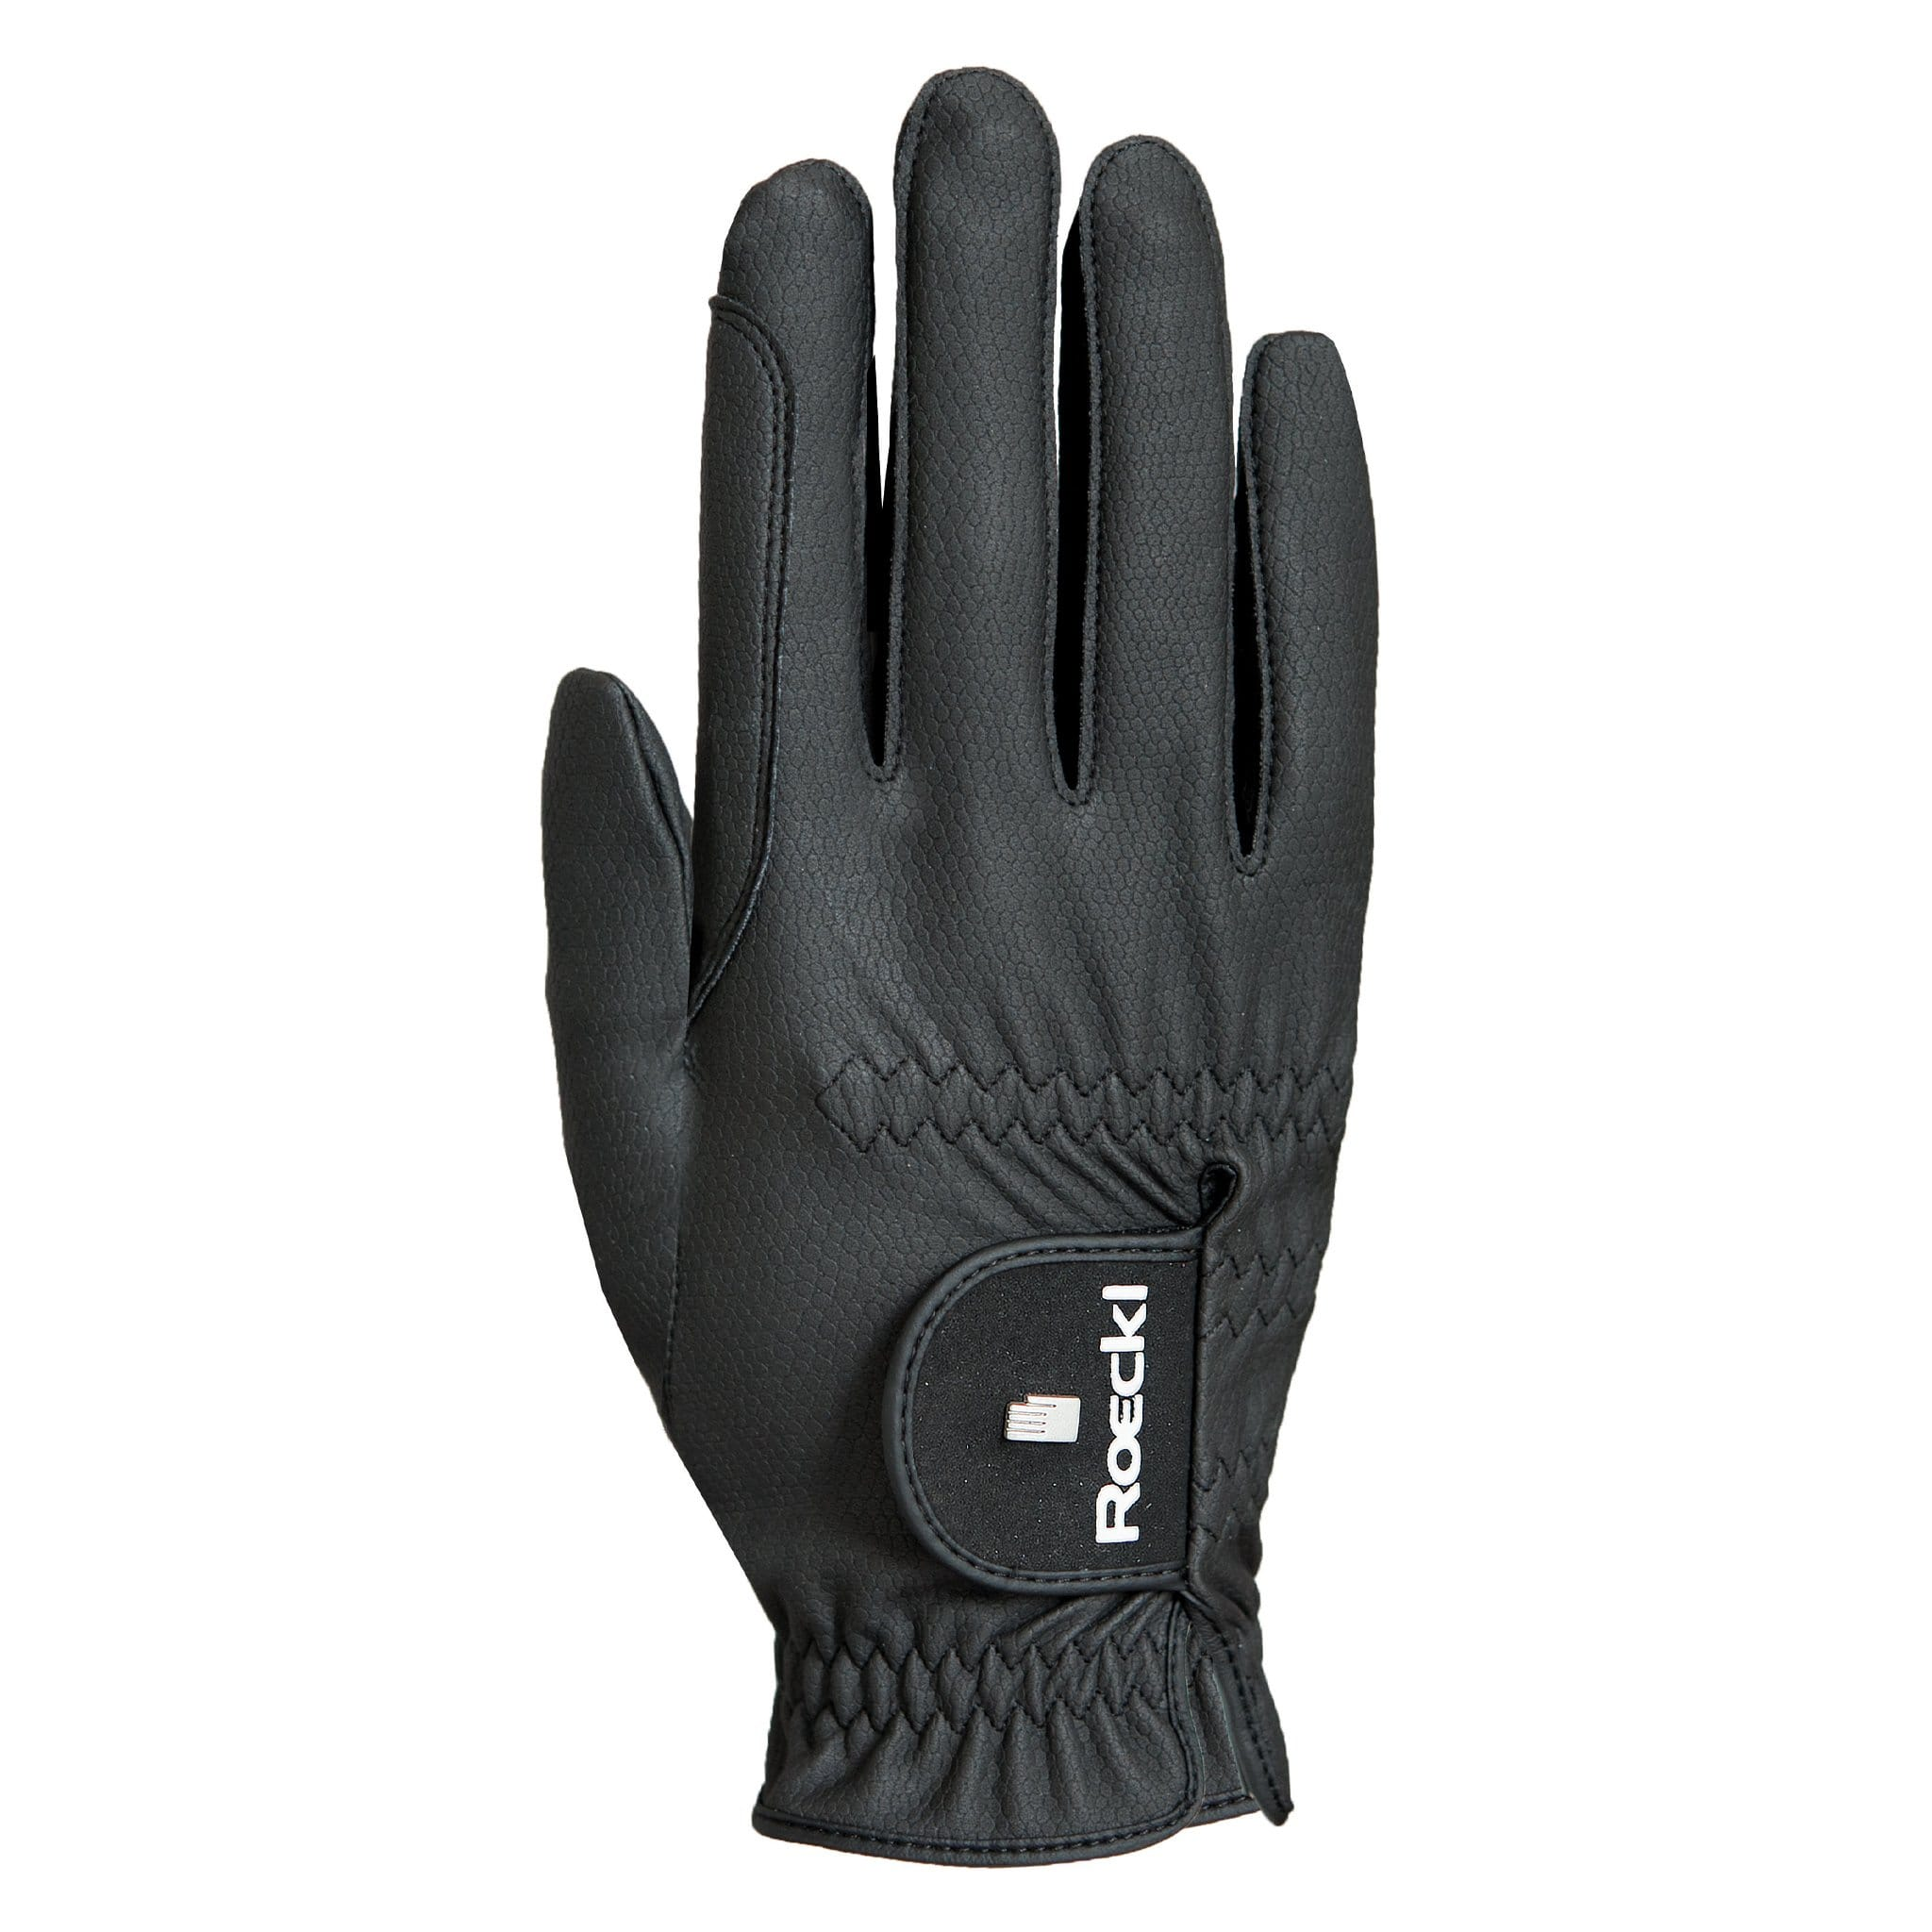 Roeckl Chester Pro Gloves 3301-108-000 Black Back View